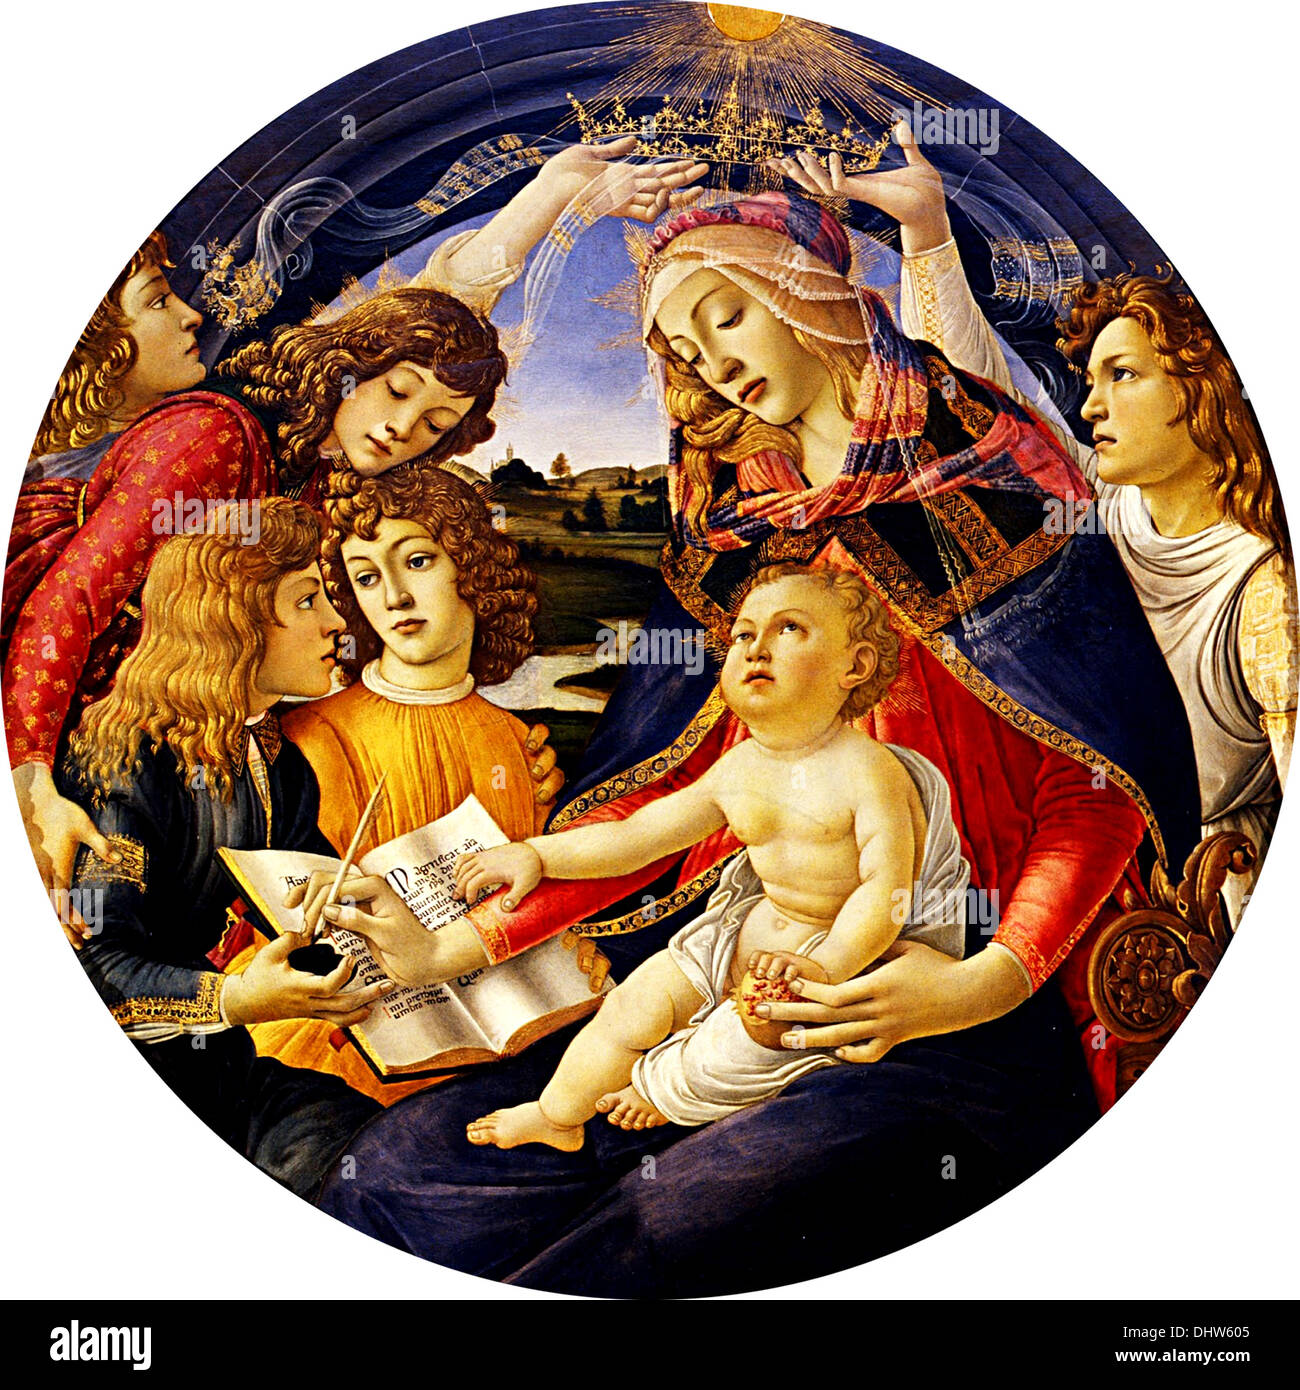 Madonna of the Magnificat - by Sandro Botticelli, 1481 - Stock Image